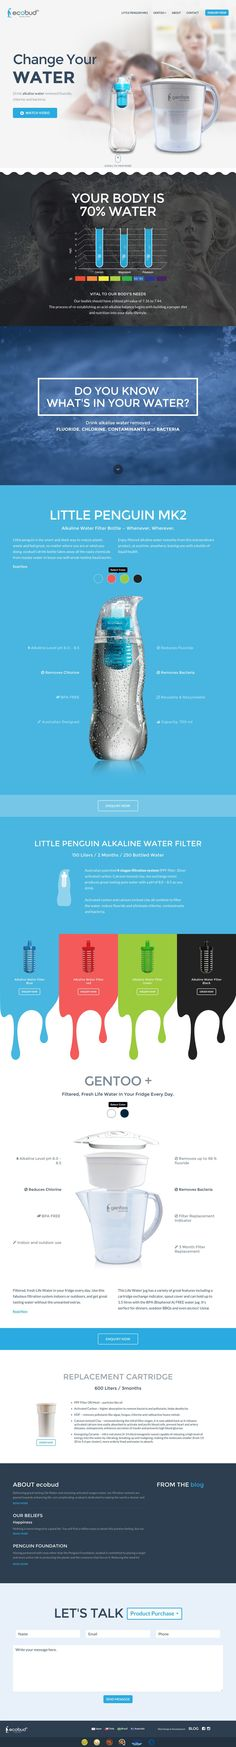 "Good looking responsive landing page for 'Ecobud' - a water filter product. Quite like that color changing feature in the ""Little Penguin MK2' section that changes the background color as well."